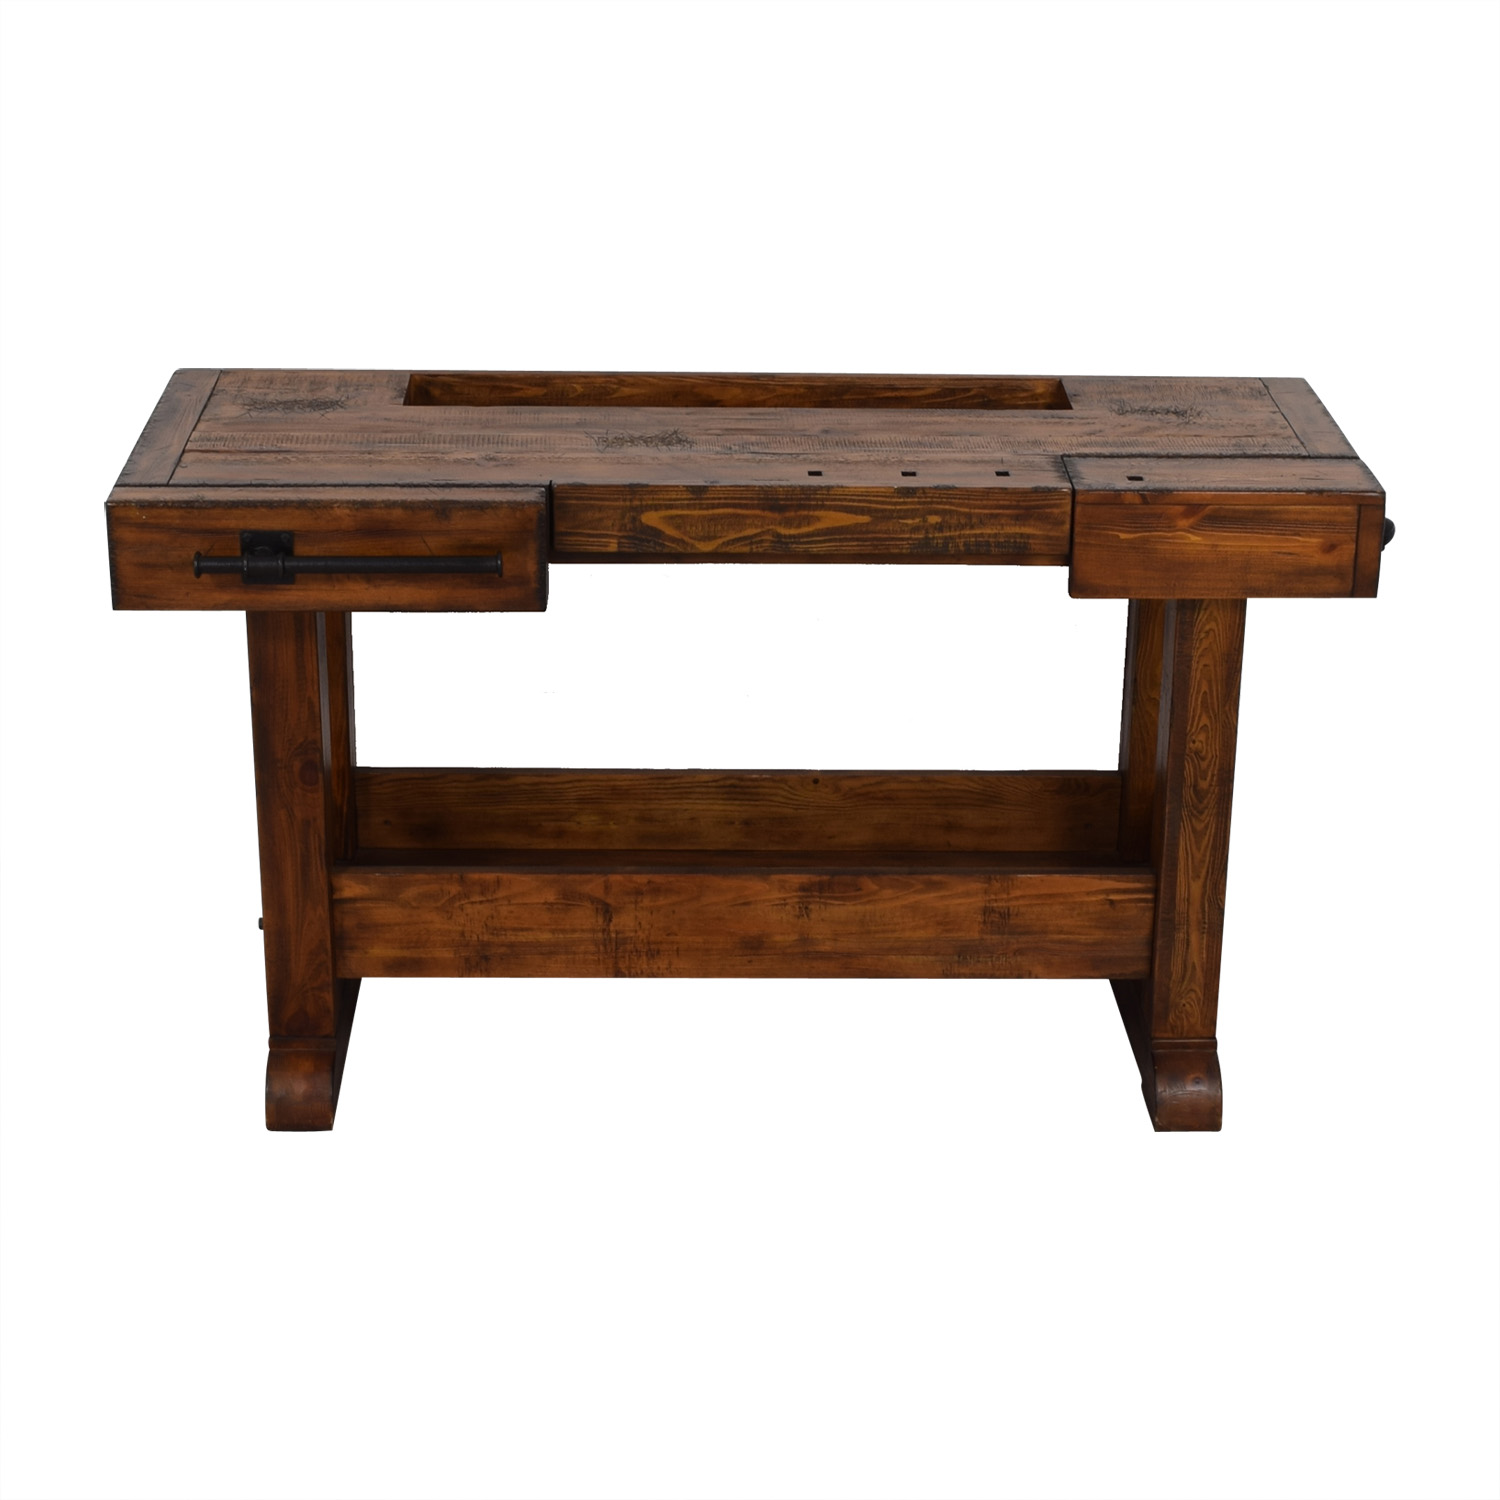 Pottery Barn Rustic Coffee Table.89 Off Pottery Barn Pottery Barn Markham Console Bar Tables